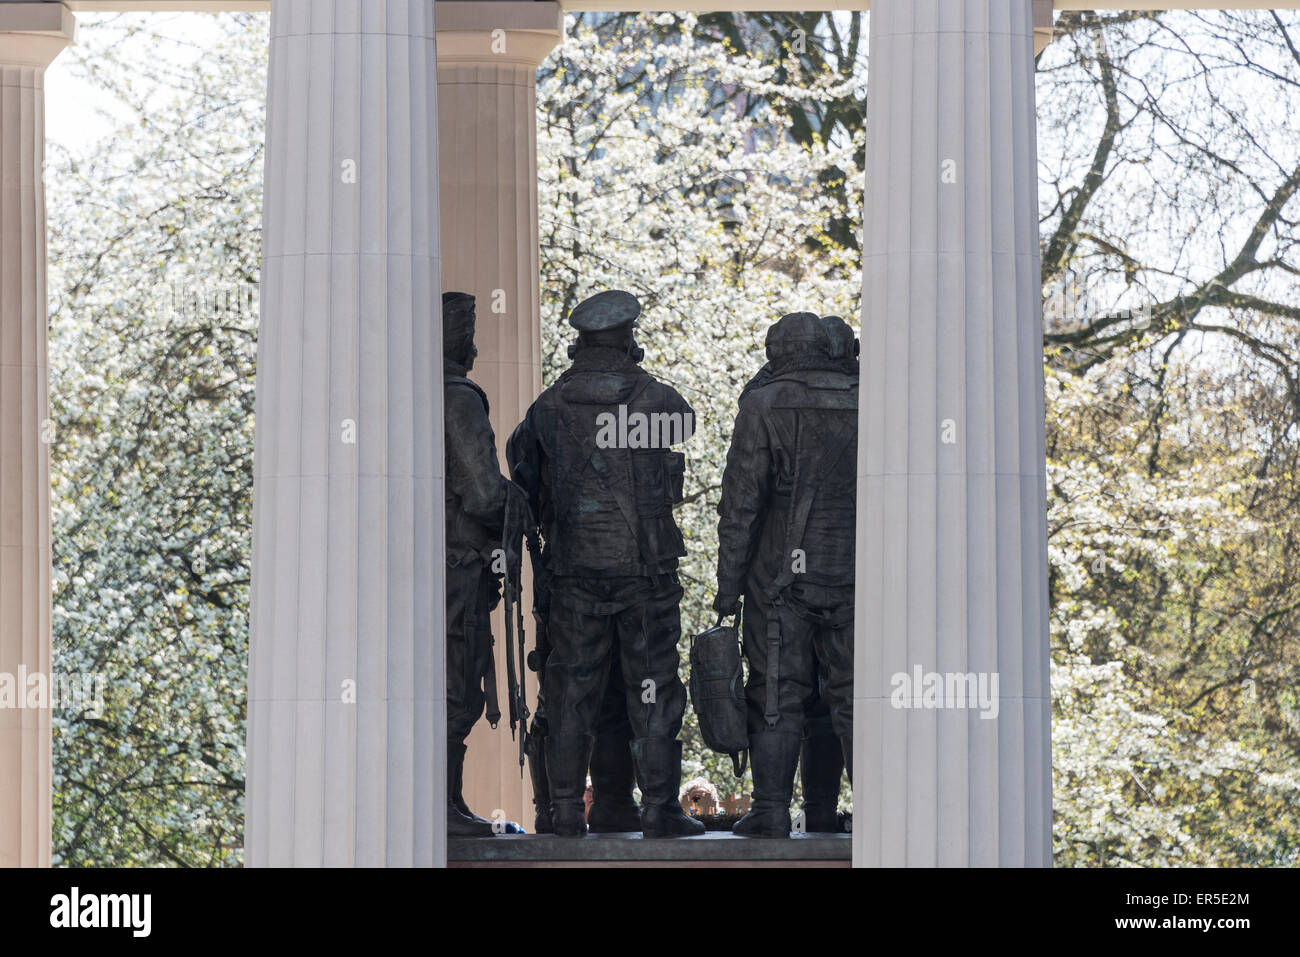 The Royal Air Force Bomber Command Memorial in spring, The Green Park, City of Westminster, London, England, United - Stock Image